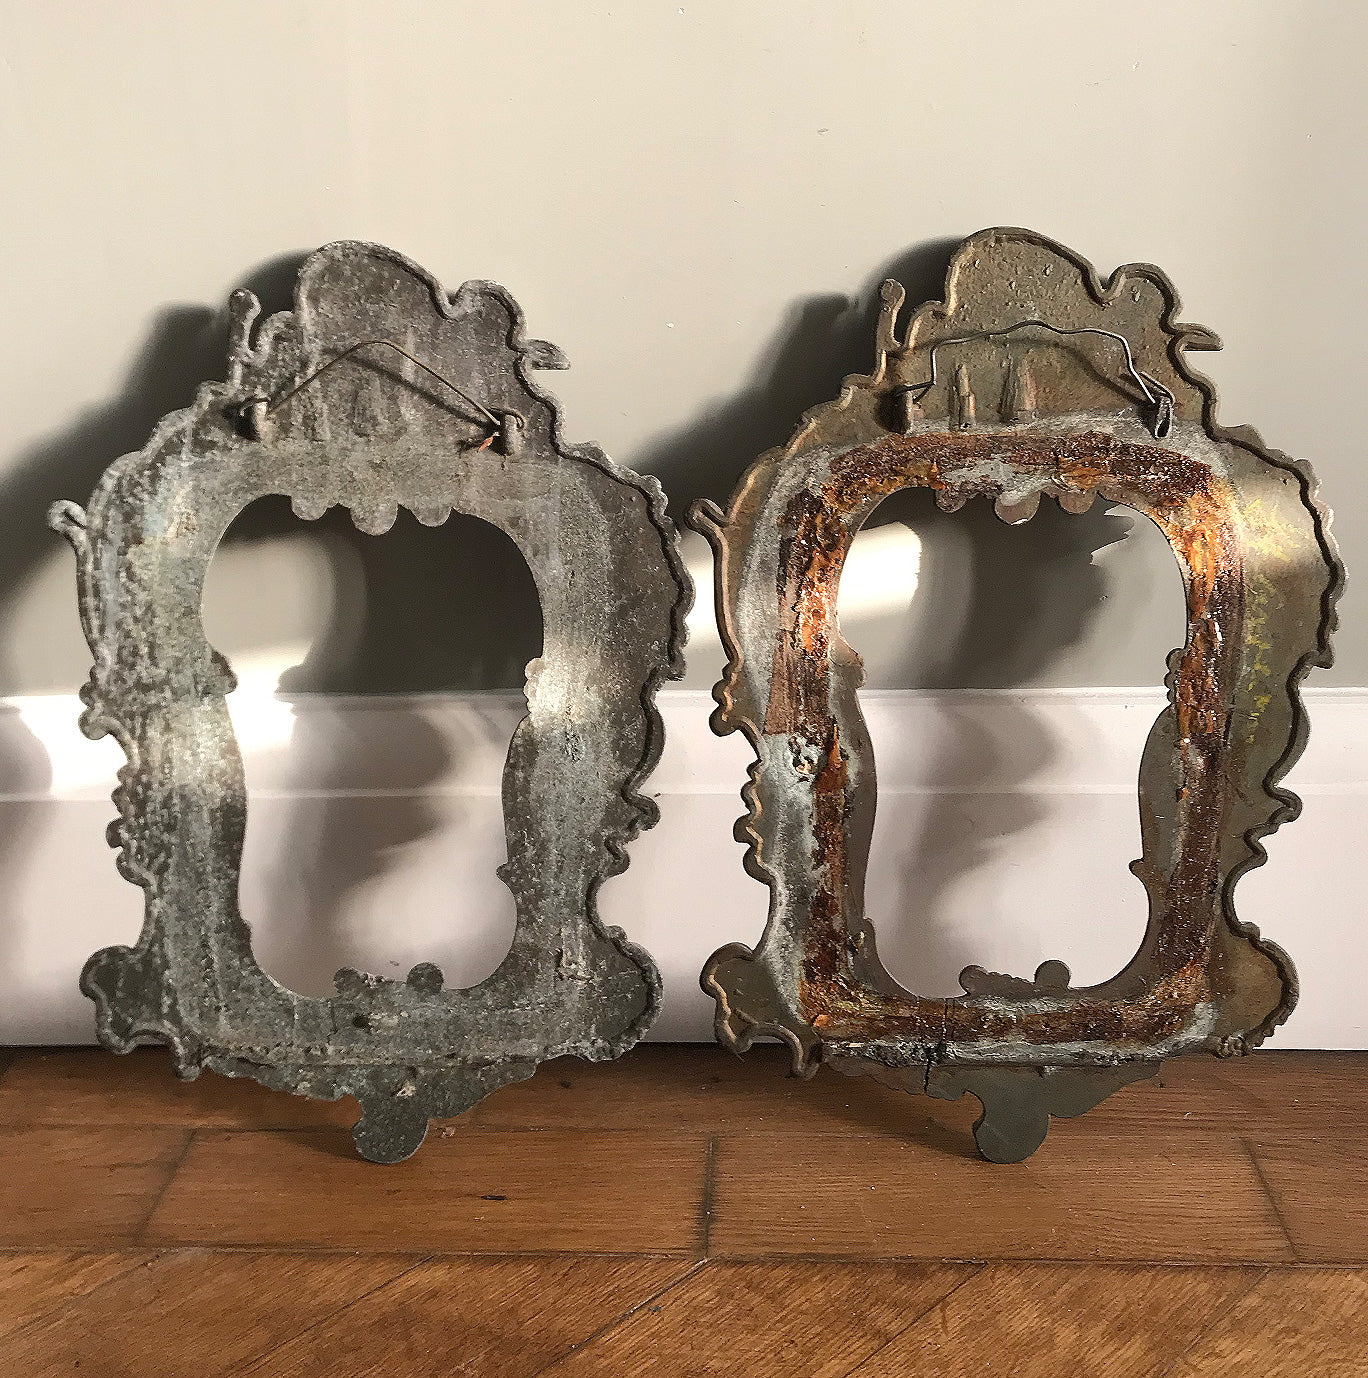 Lovely pair of Cast Metal Baroque Style Frames. Each frame has a couple of Cherubs at the top with flowing Baroque decoration around the rest of the frame - SHOP NOW - www.intovintage.co.uk